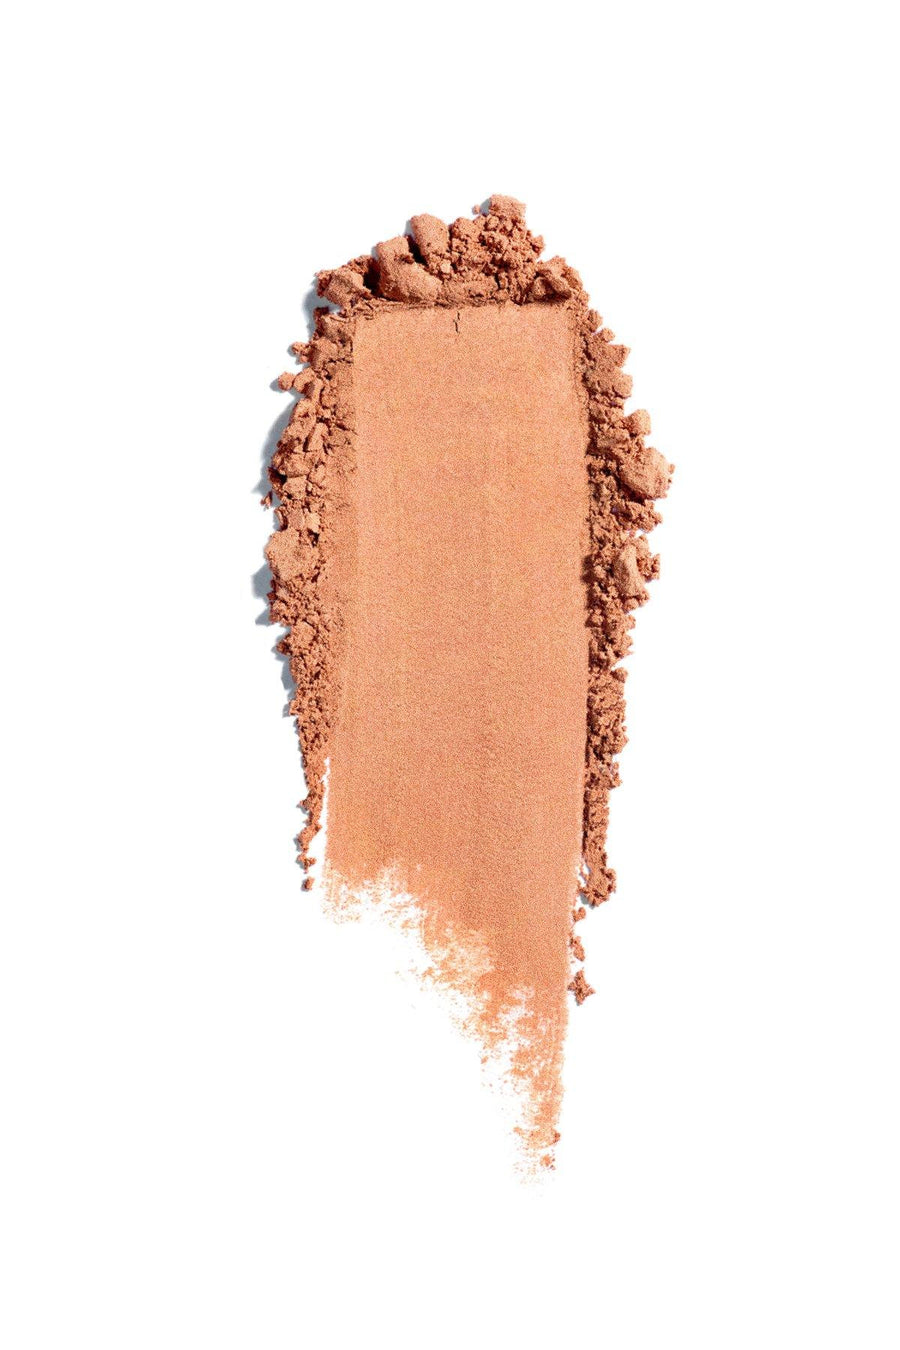 Mineral Blush #6 - Burnt Orange - Blend Mineral Cosmetics